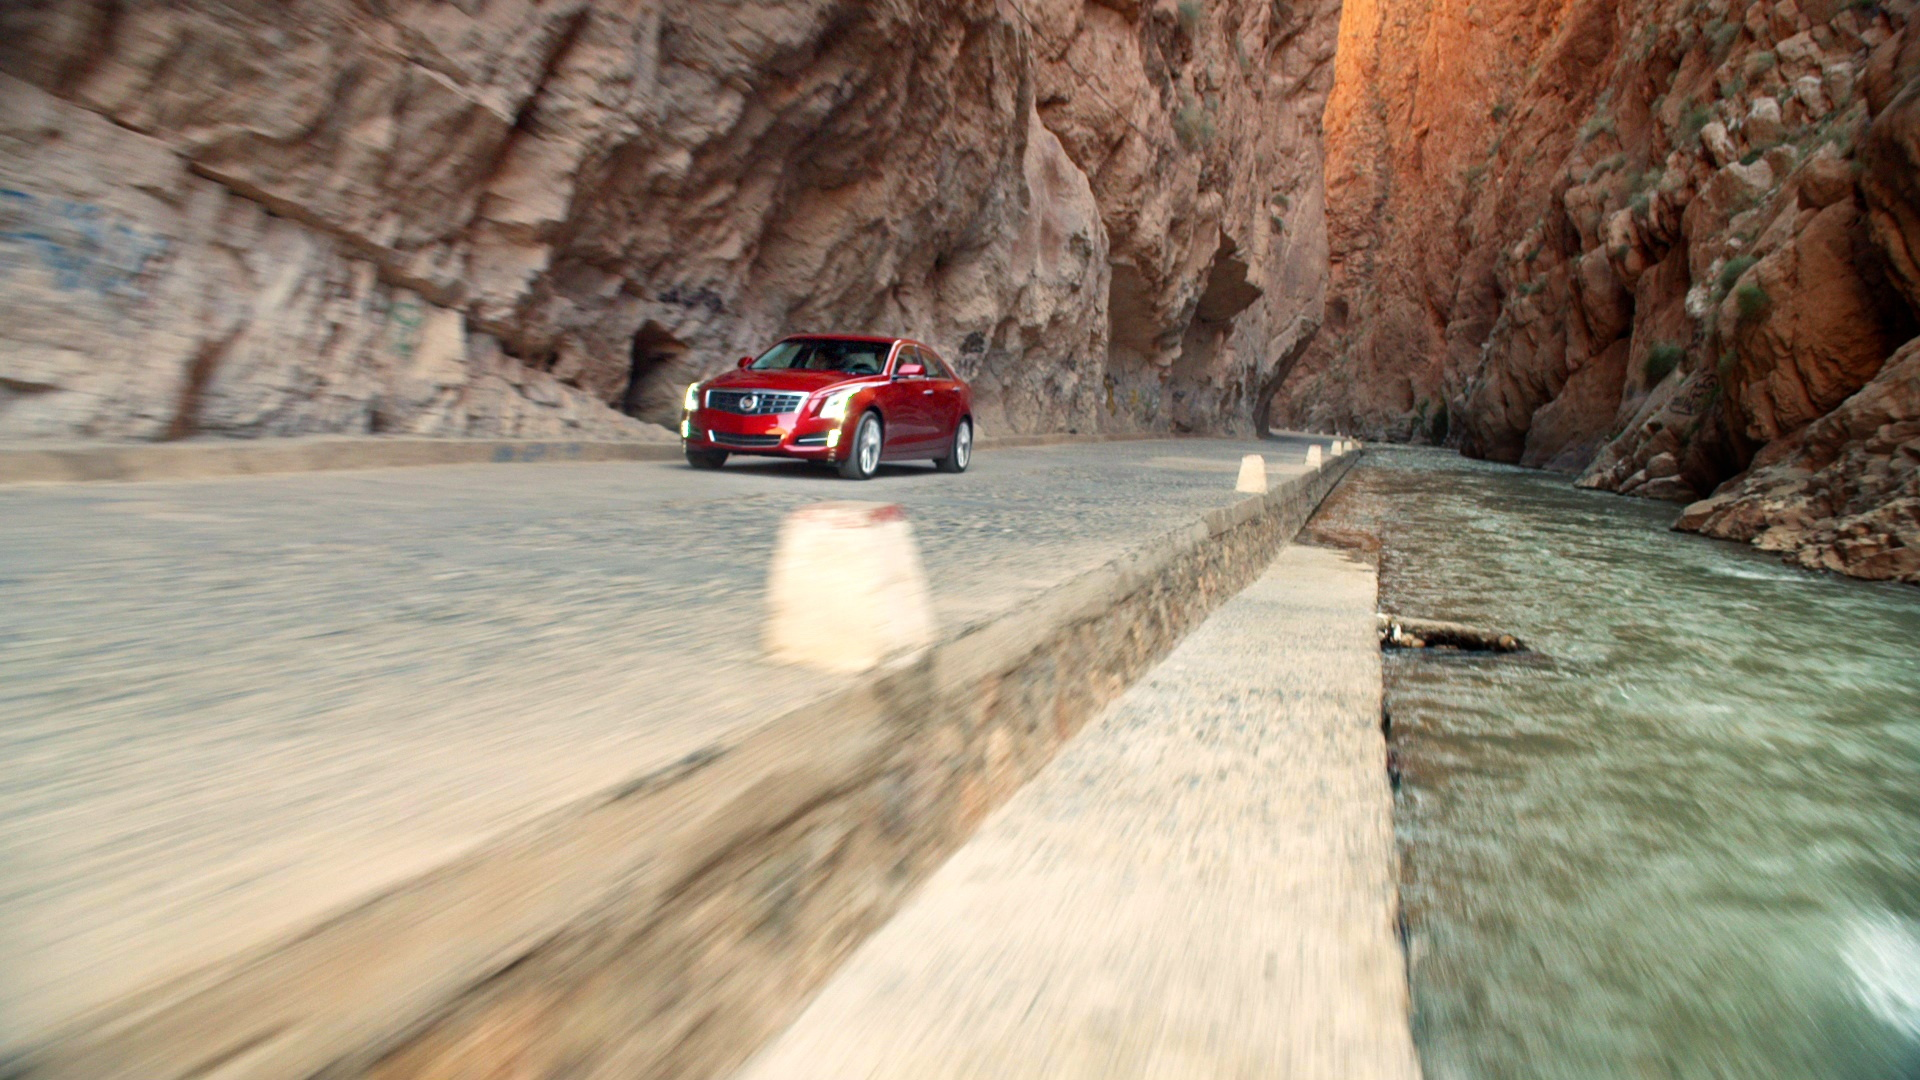 Still images from Cadillac ATS vs The World